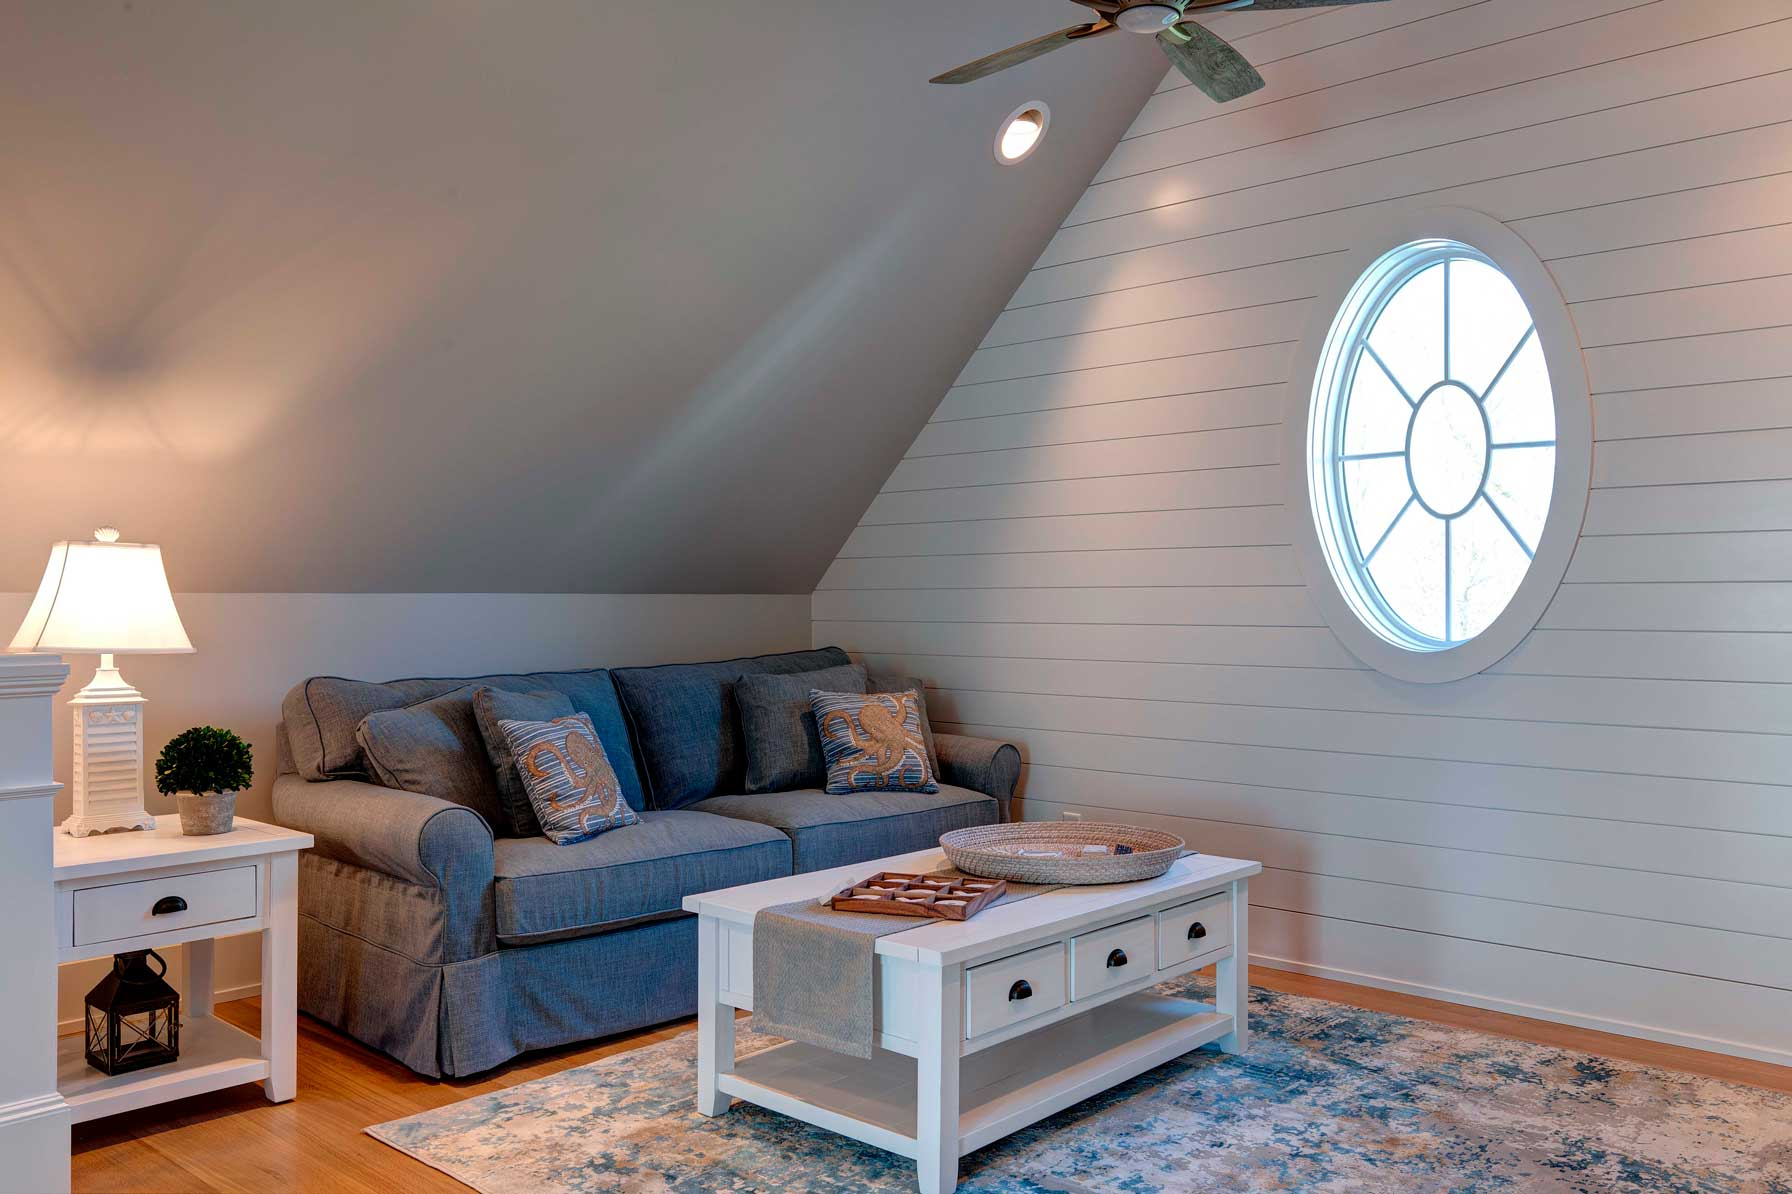 Living area with blue sofa and shiplap walls and circular window